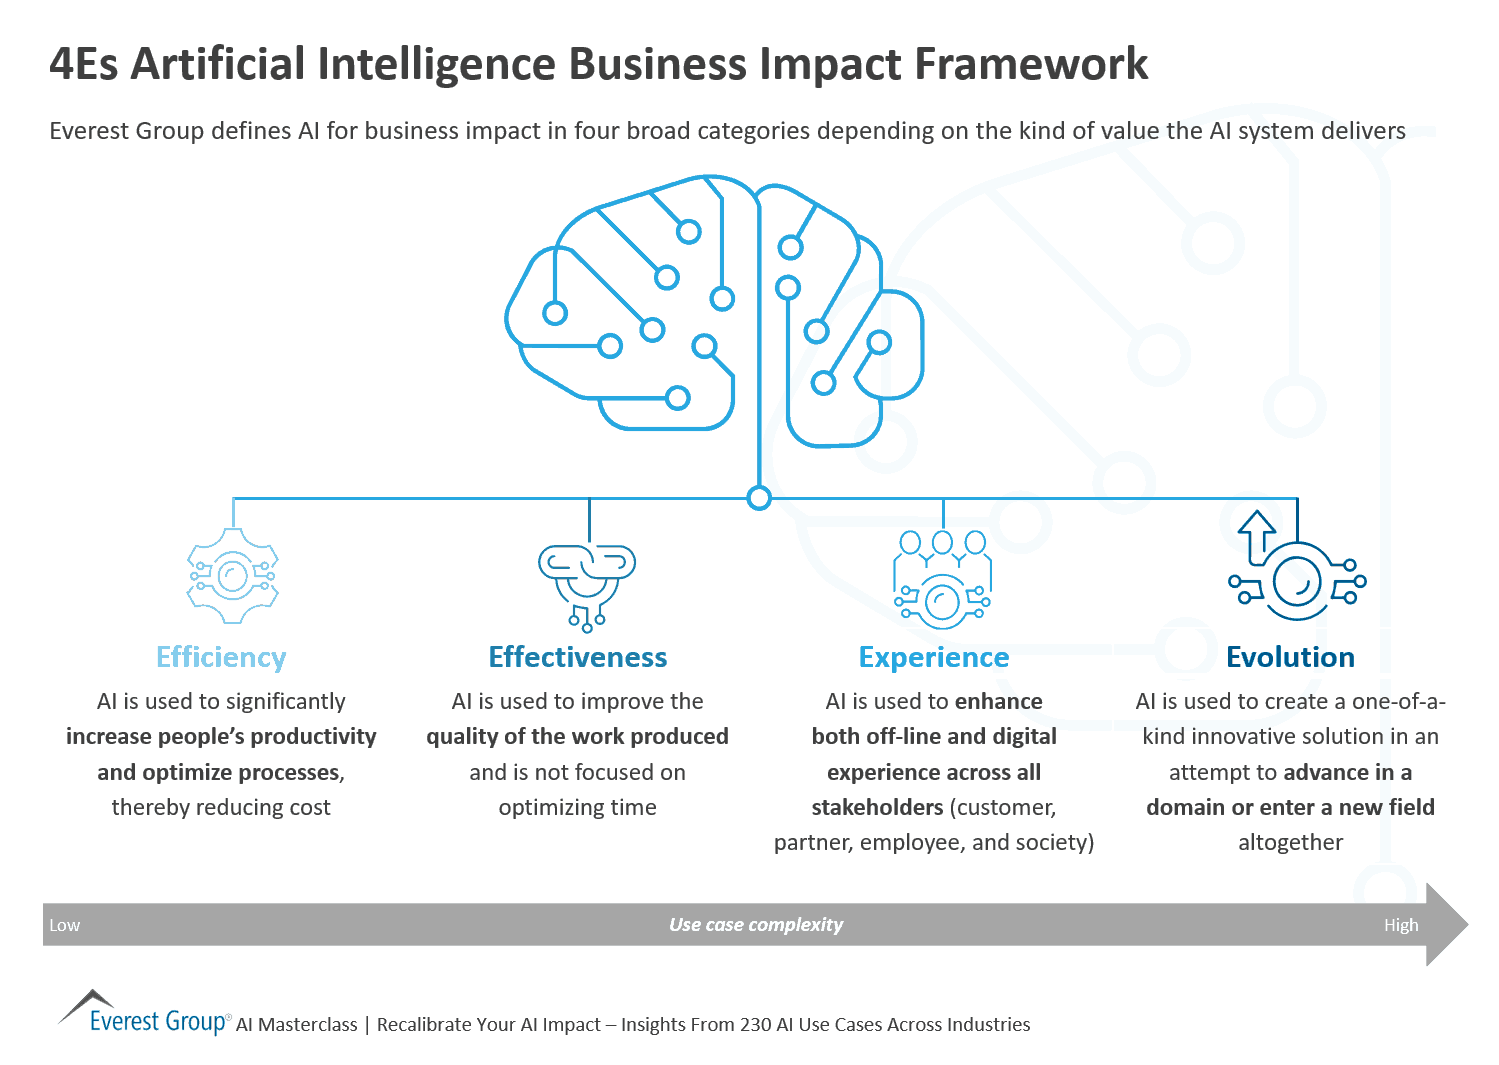 4Es Artificial Intelligence Business Impact Framework